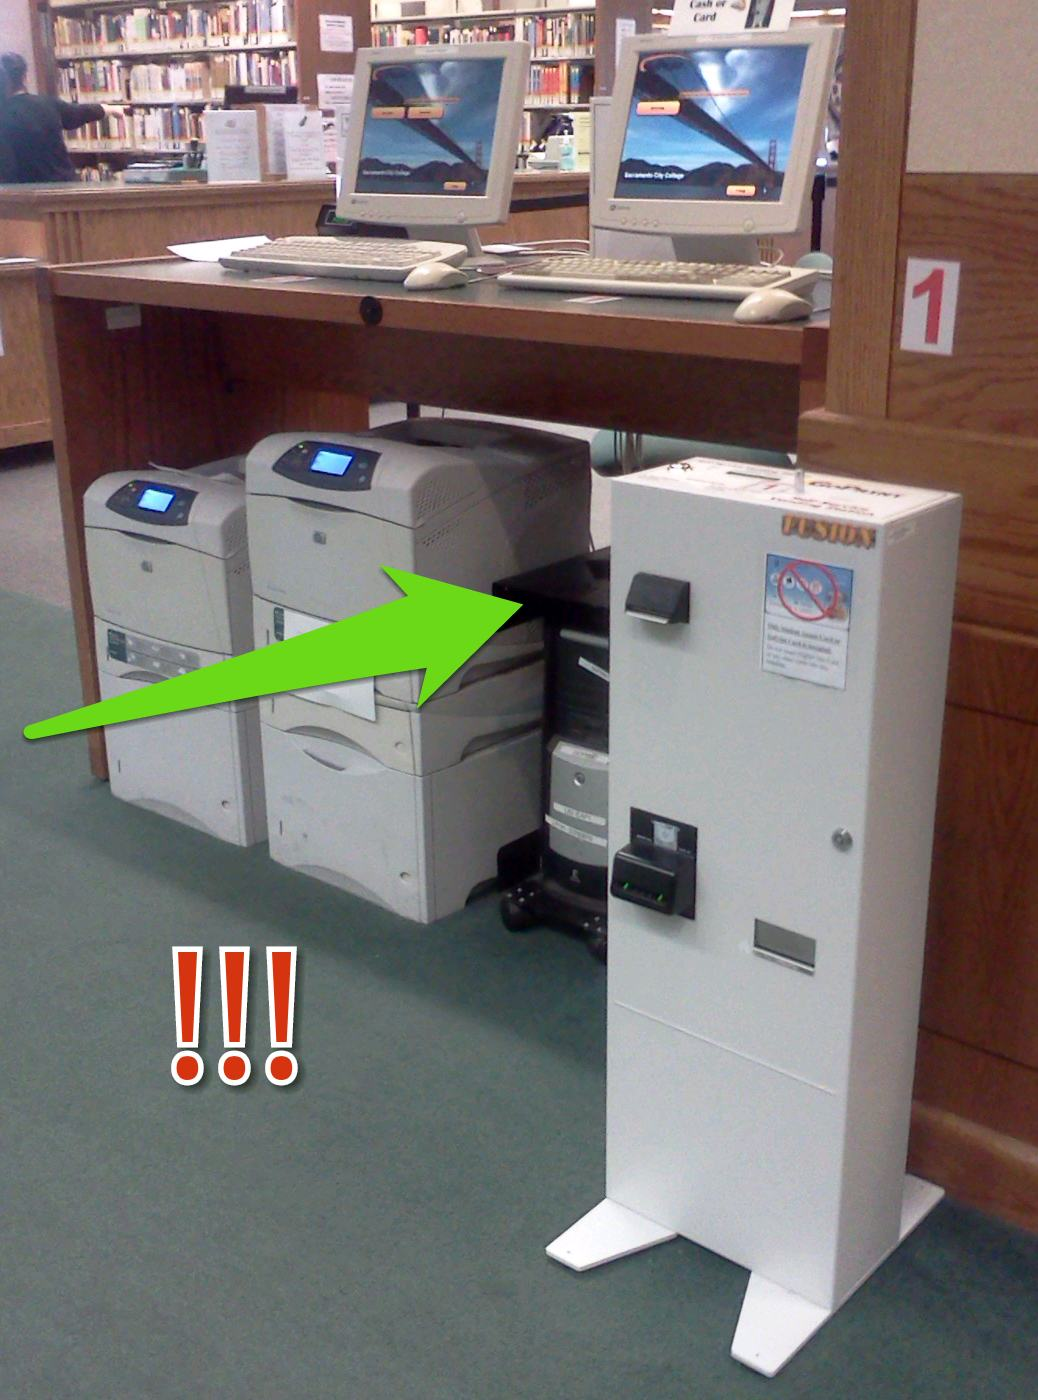 Printer with attached tower that accepts cash